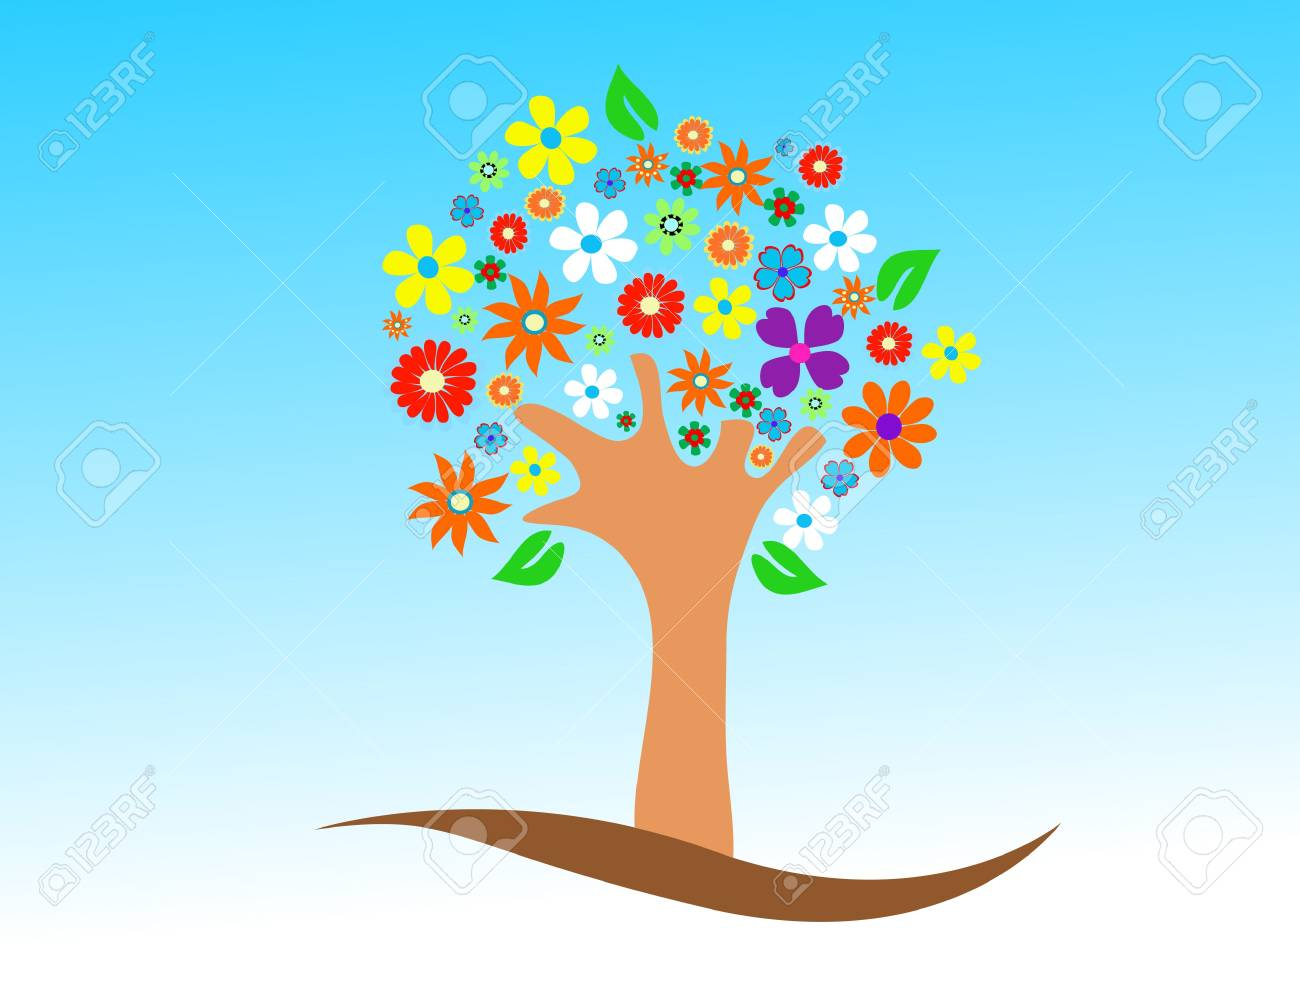 Colorful tree with flowers vector illustration Stock Vector - 13737643